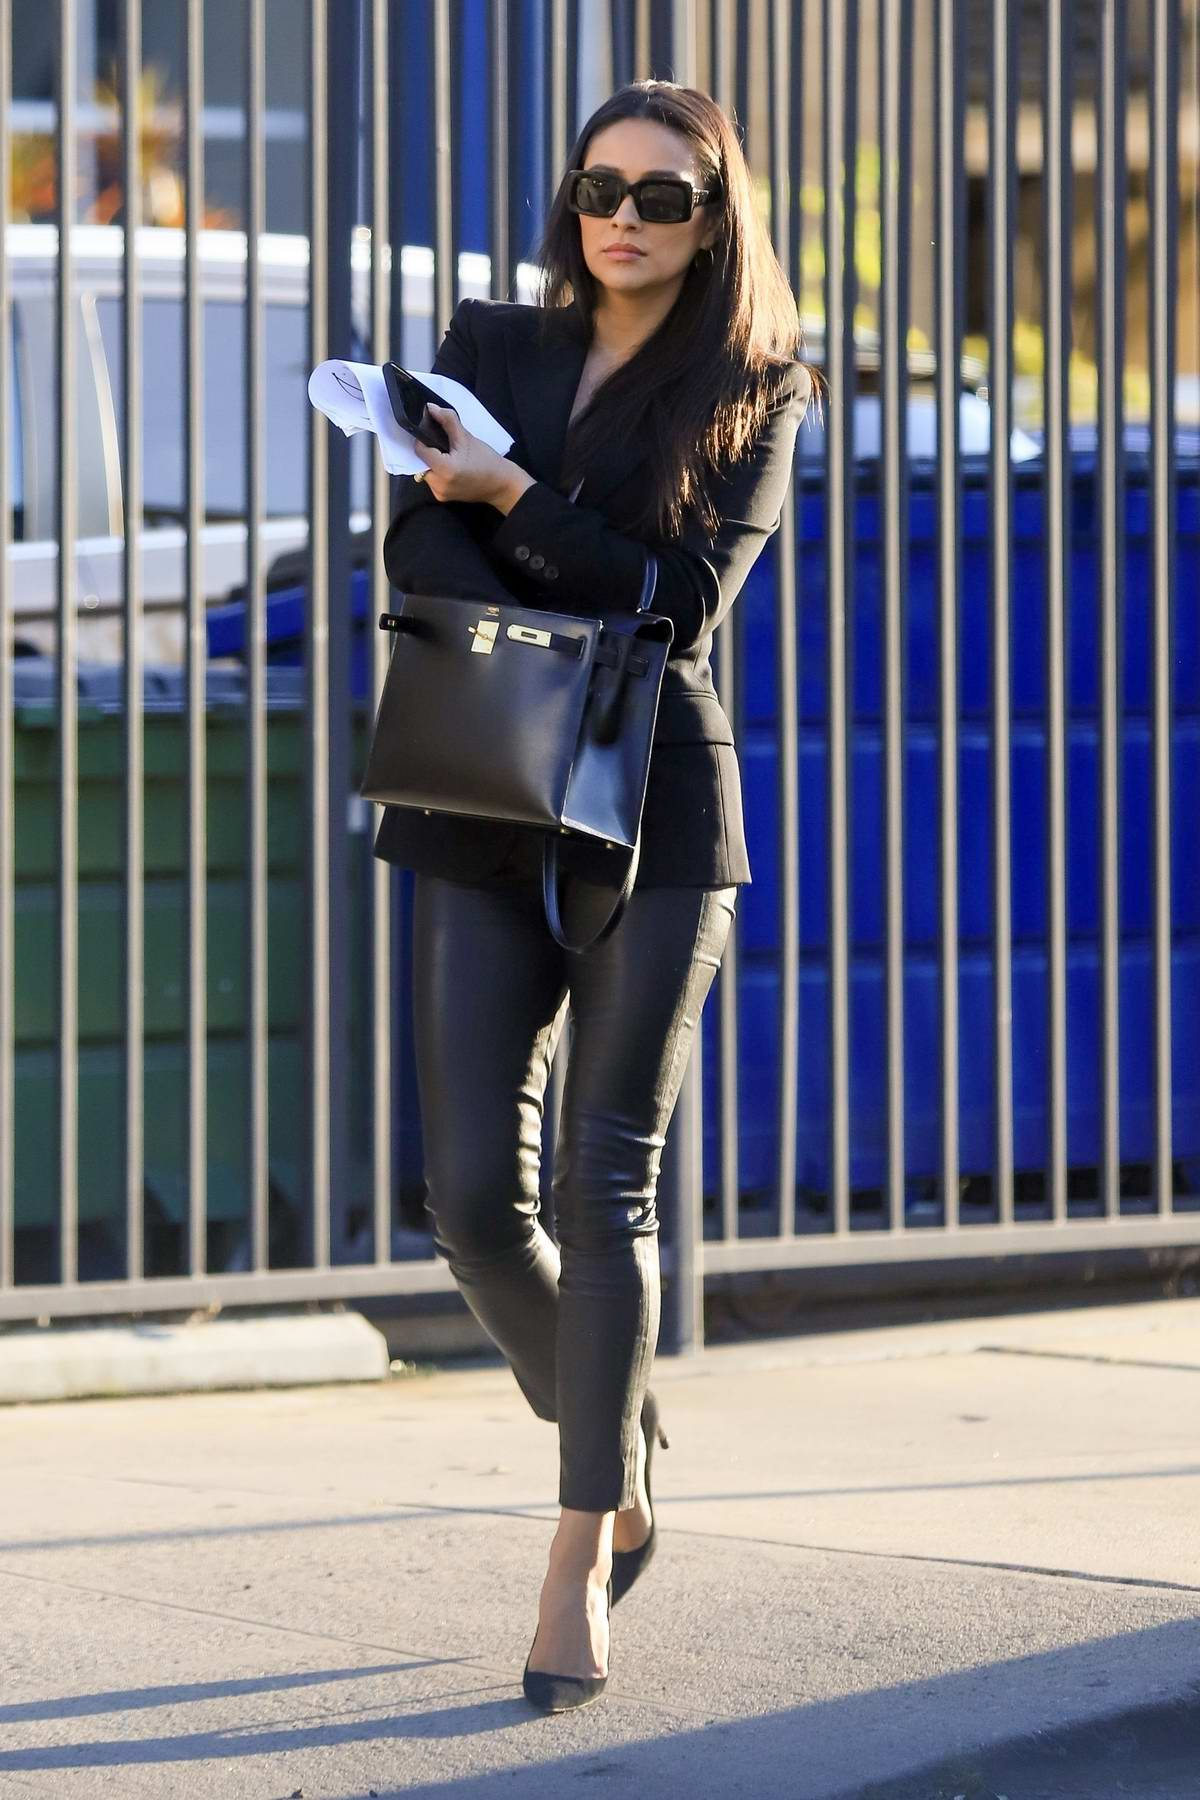 Shay Mitchell looks great in black blazer and leather pants while out for meeting in Culver City, California